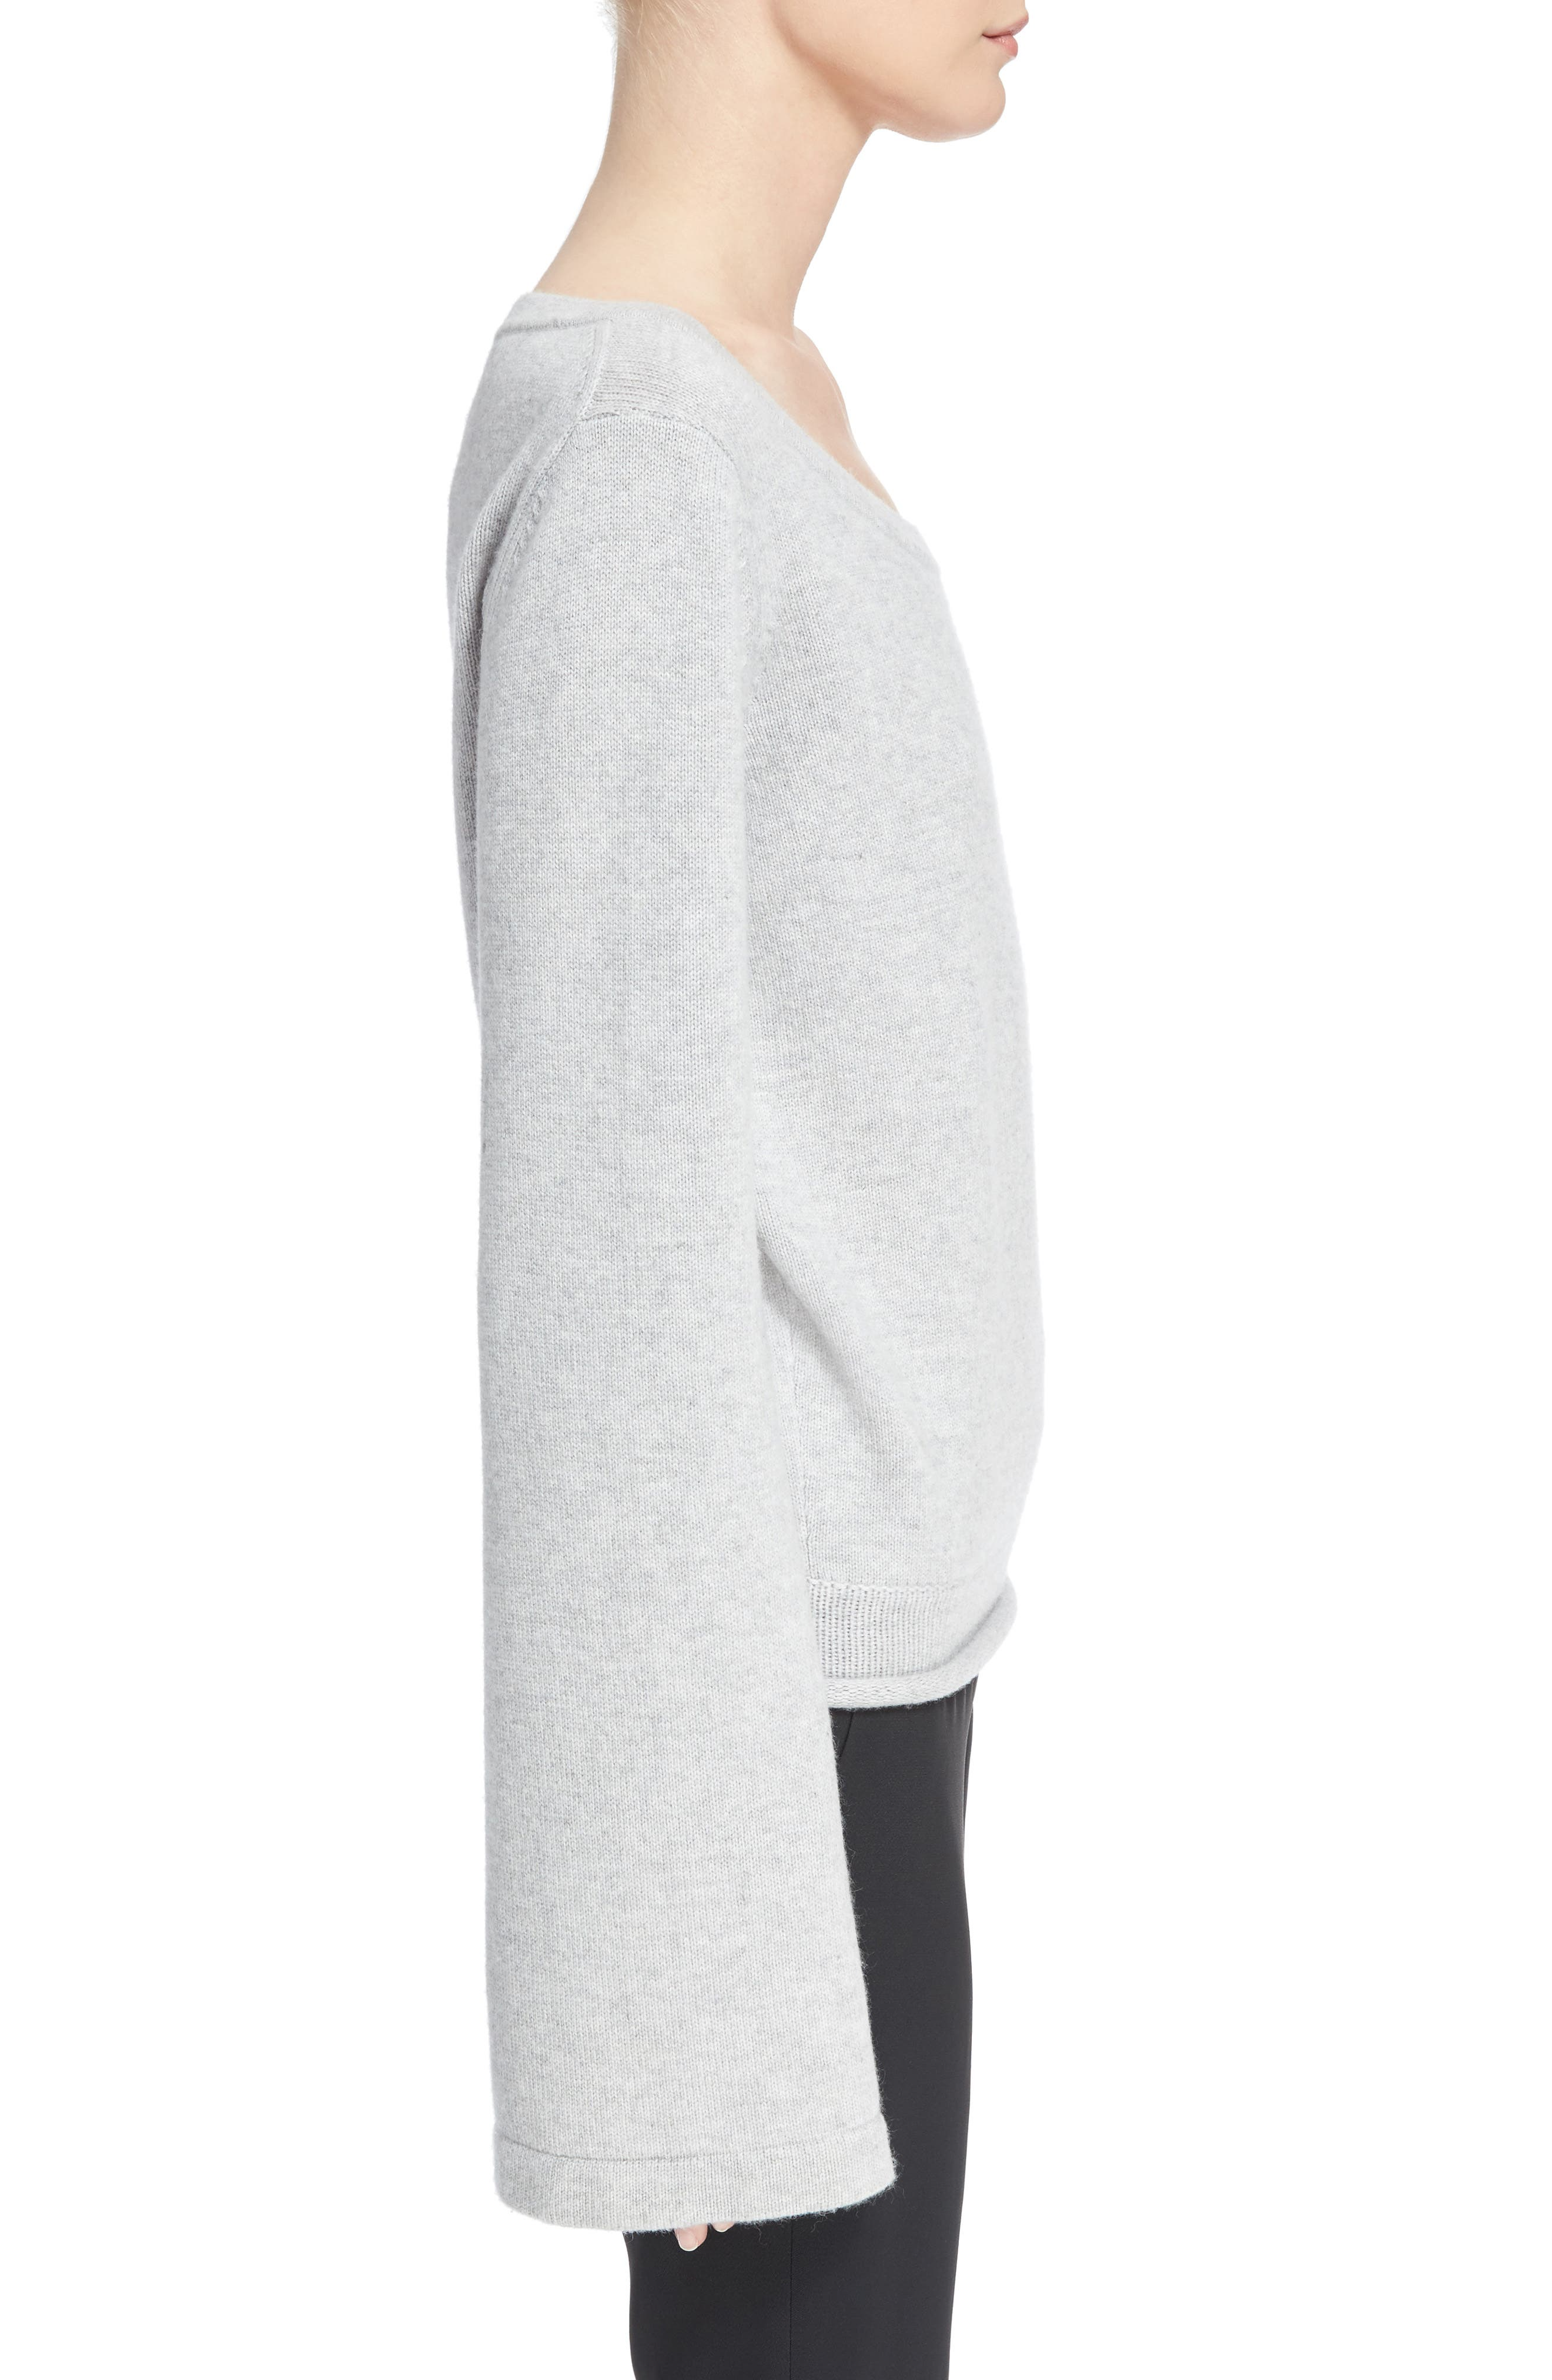 Iconic Cashmere Sweater,                             Alternate thumbnail 3, color,                             Cozy Grey